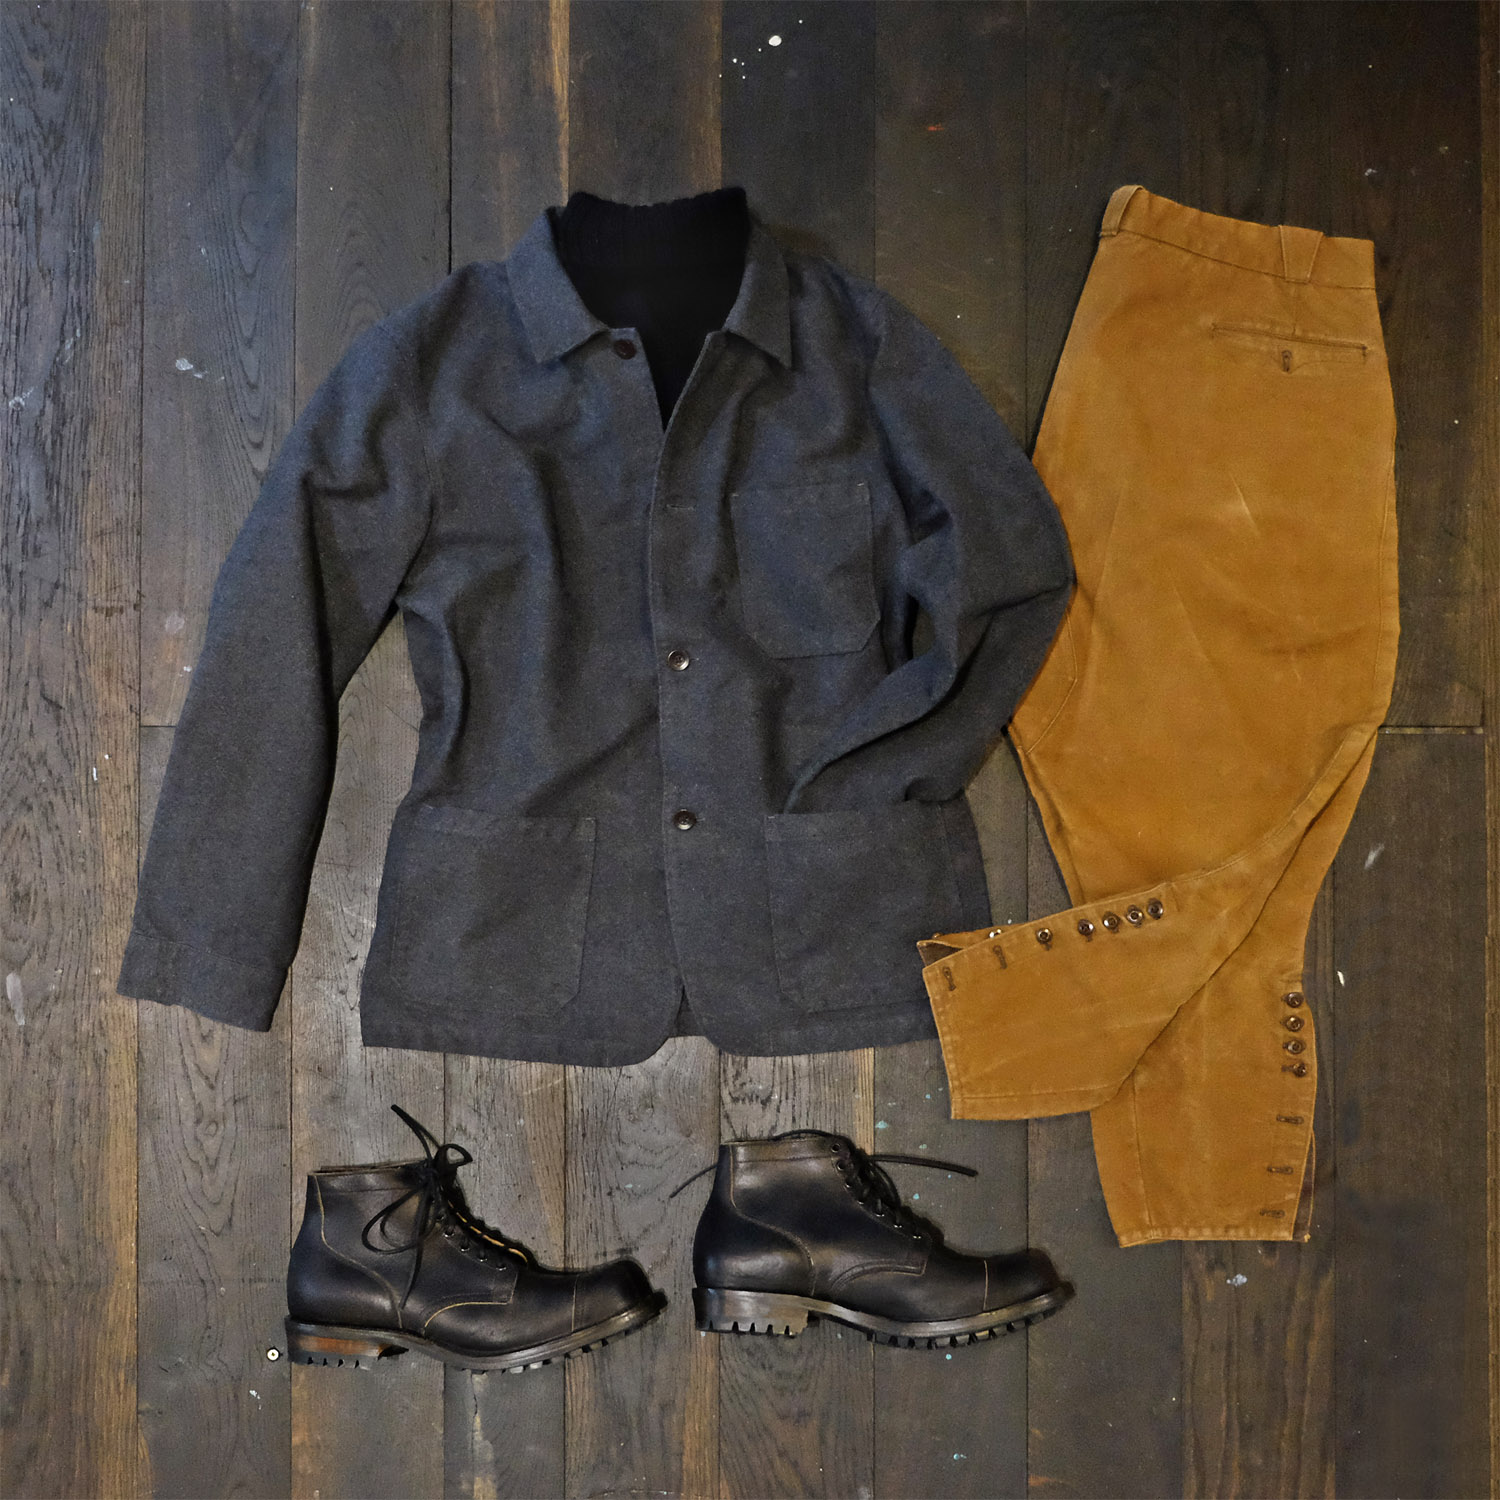 outfit-portugueseflannel-jacke-grau-interbrigade-hannes-pullover-vintage-breeches-viberg-1940-serviceboot-waxflesh